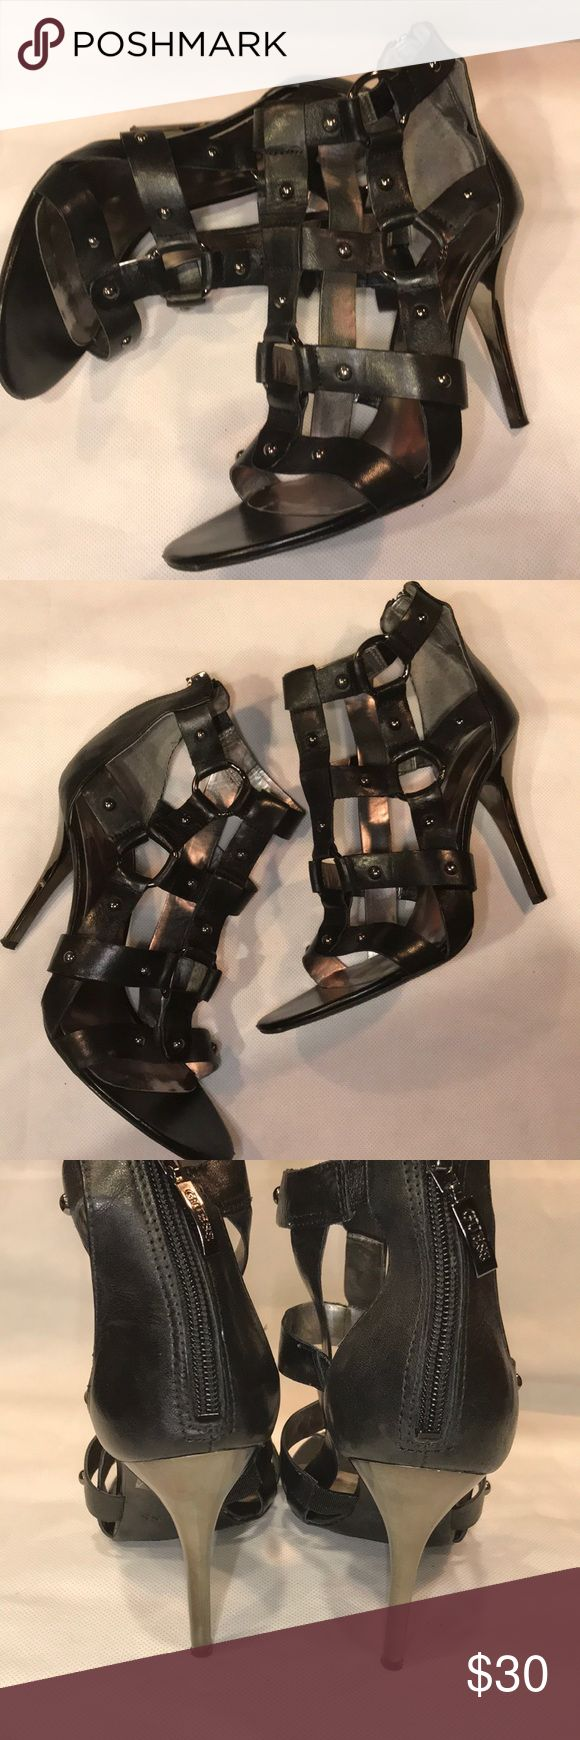 GUESS Gladiator Caged Heeled Sandals Size 8.5 GUESS Gladiator Caged Heeled Sandals Size 8.5 Leather straps have elastic and pewter rings with metal studs. Back zipper closure. Rubber sole and stiletto heels. 3.75 inch heel Guess Shoes Sandals